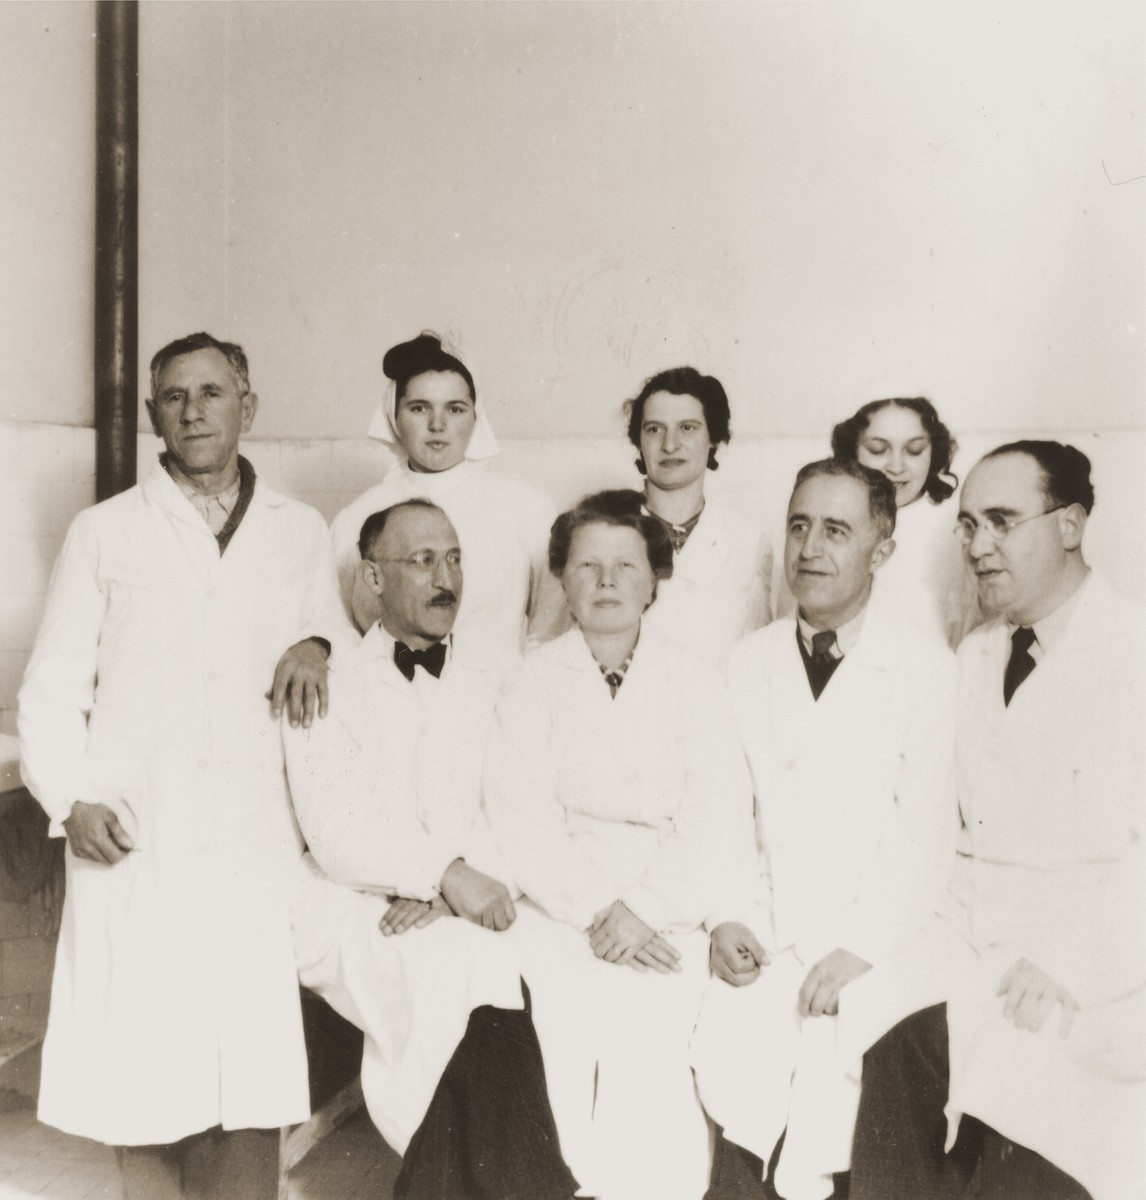 Group portrait of physicians who provided medical care for members of the Kladovo transport at an infirmary in Sabac.